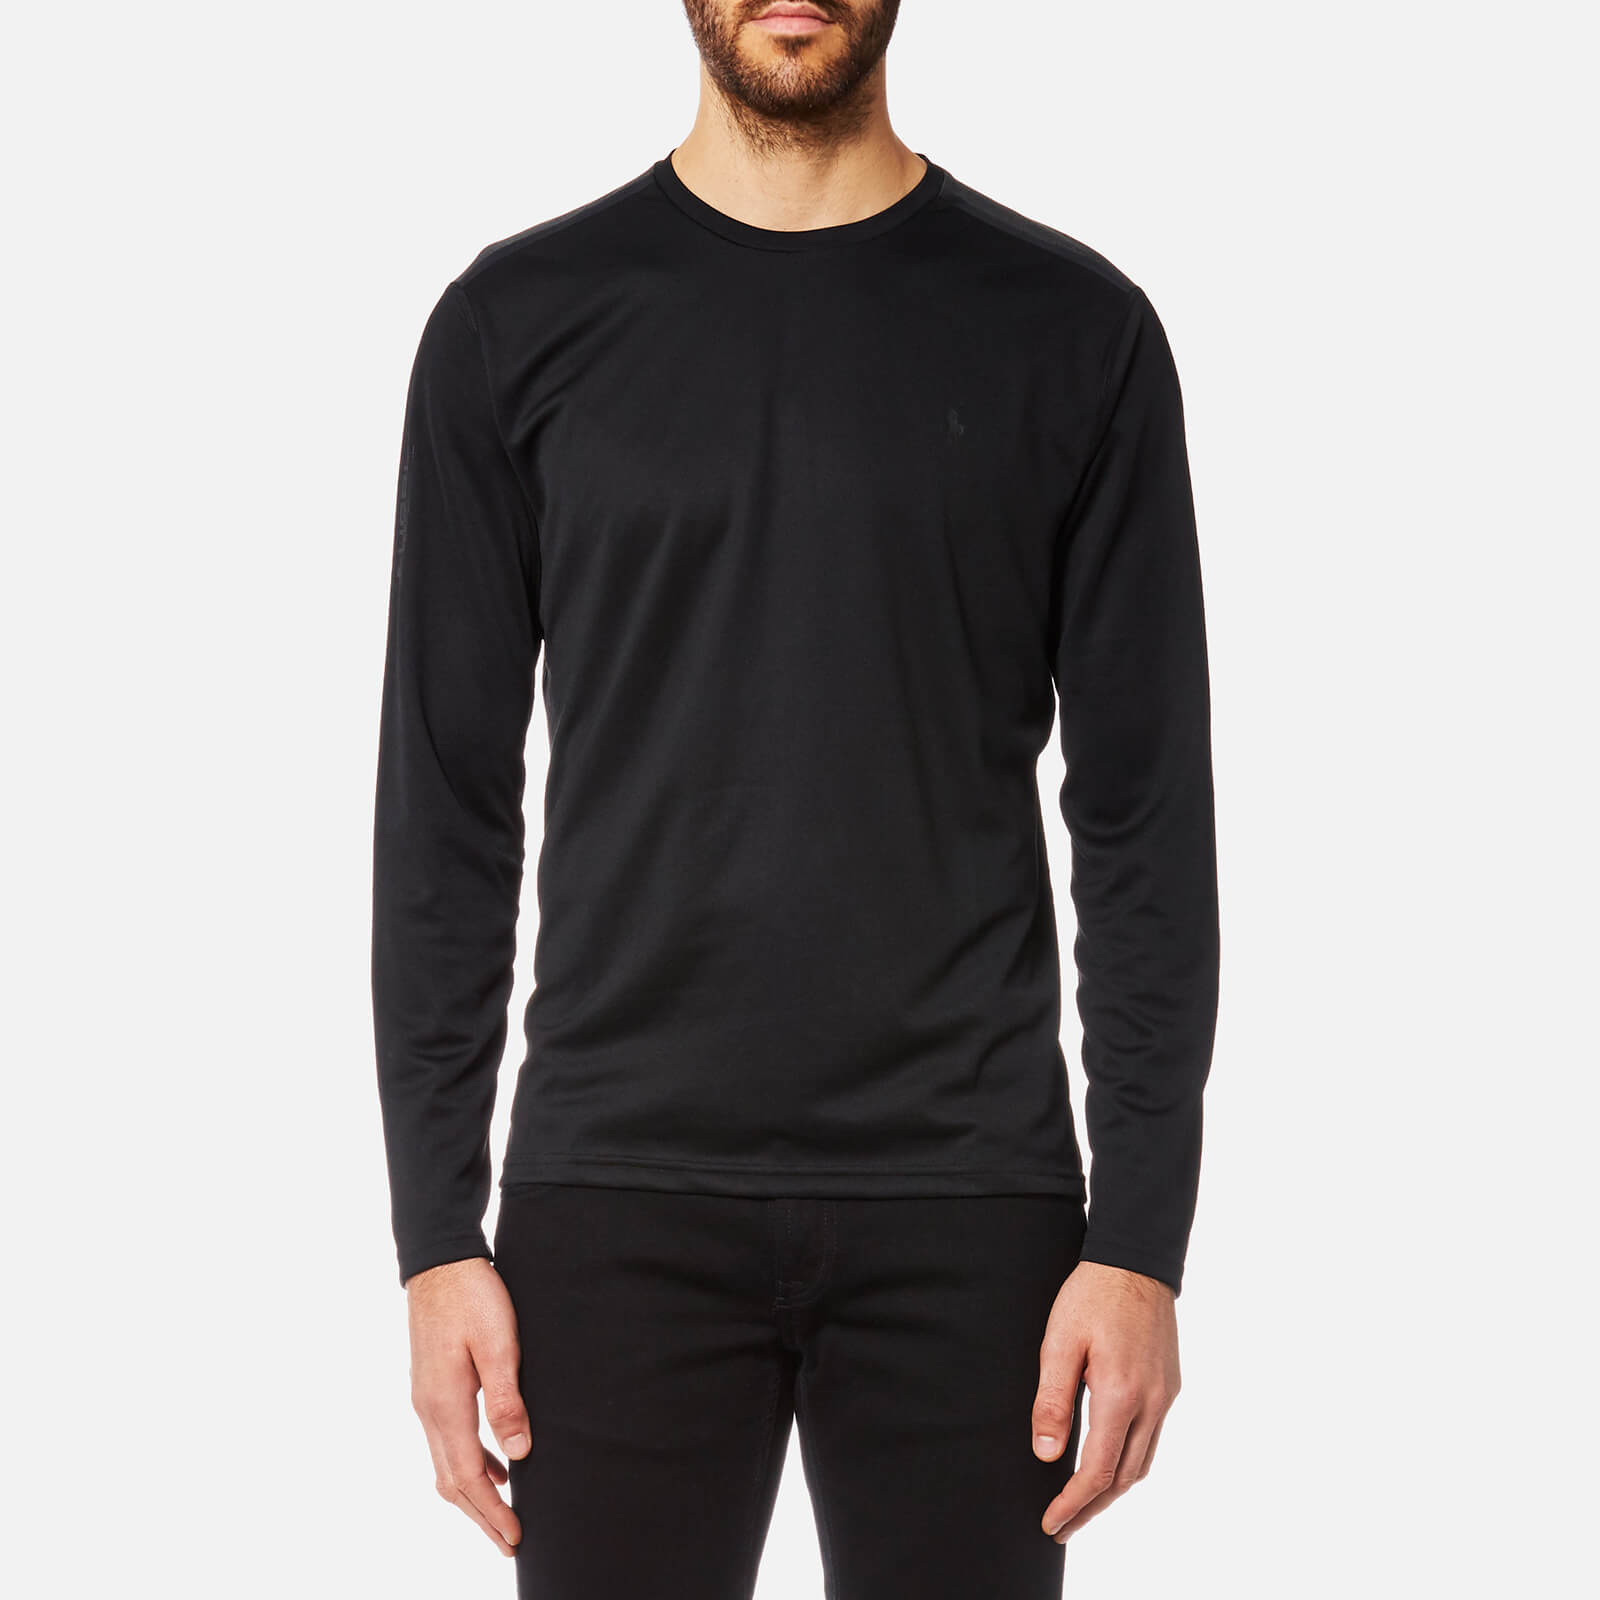 69be822d843f Polo Ralph Lauren Men s Performance Elevated Long Sleeve T-Shirt - Polo  Black - Free UK Delivery over £50